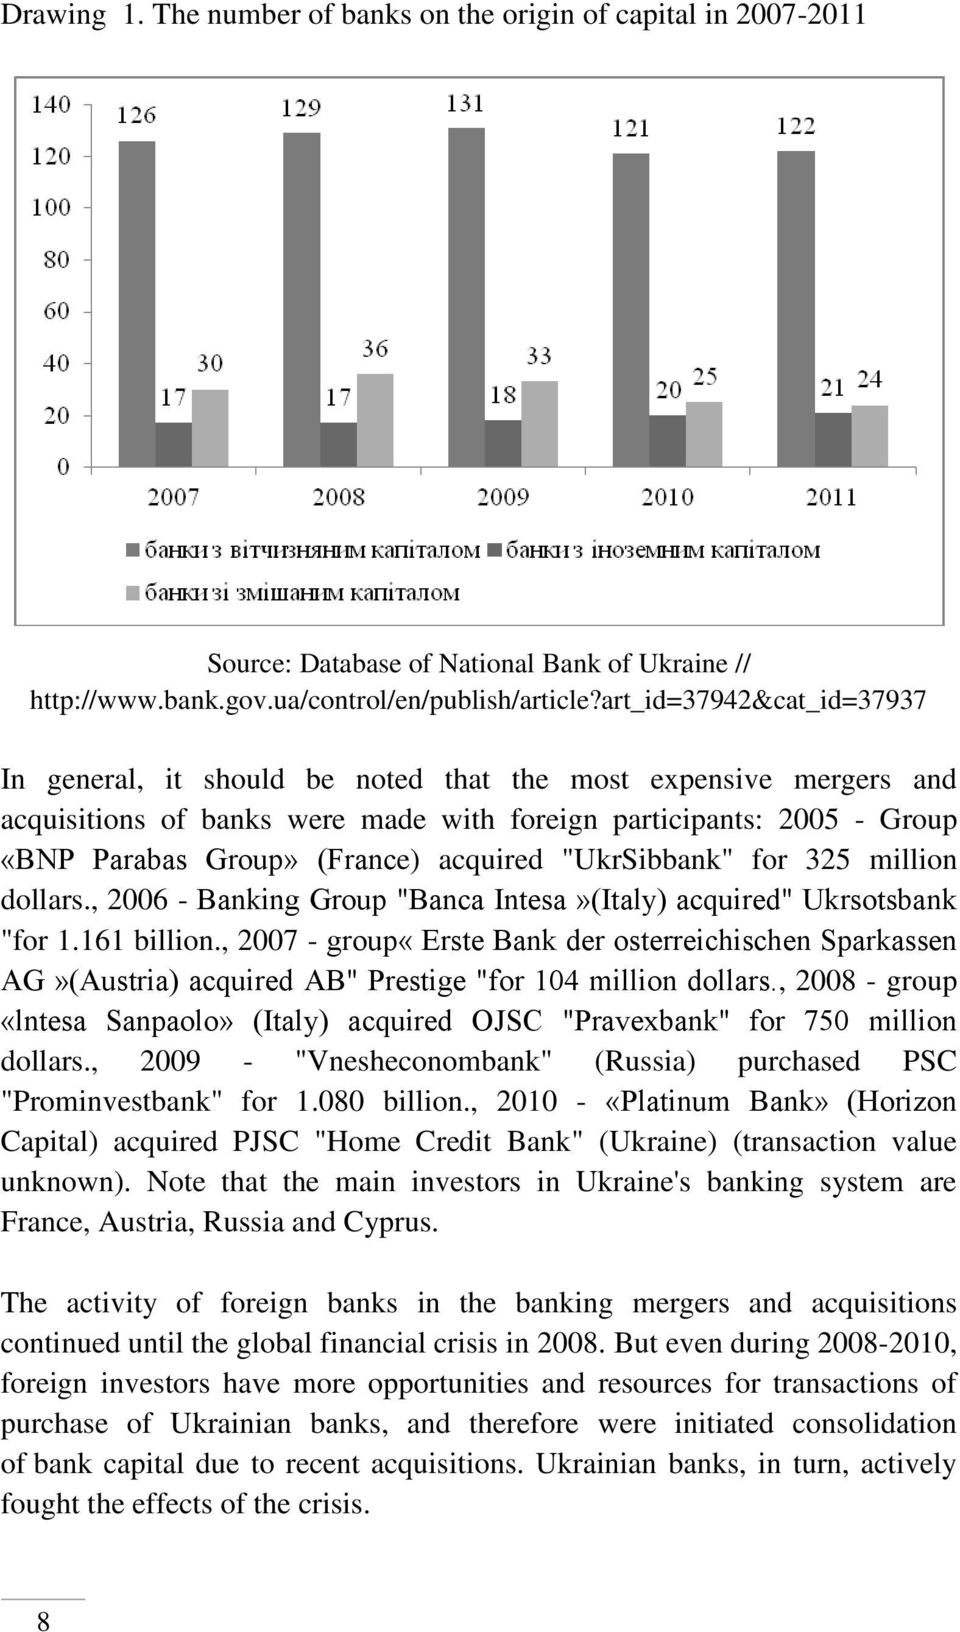 "acquired ""UkrSibbank"" for 325 million dollars., 2006 - Banking Group ""Banca Intesa»(Italy) acquired"" Ukrsotsbank ""for 1.161 billion."